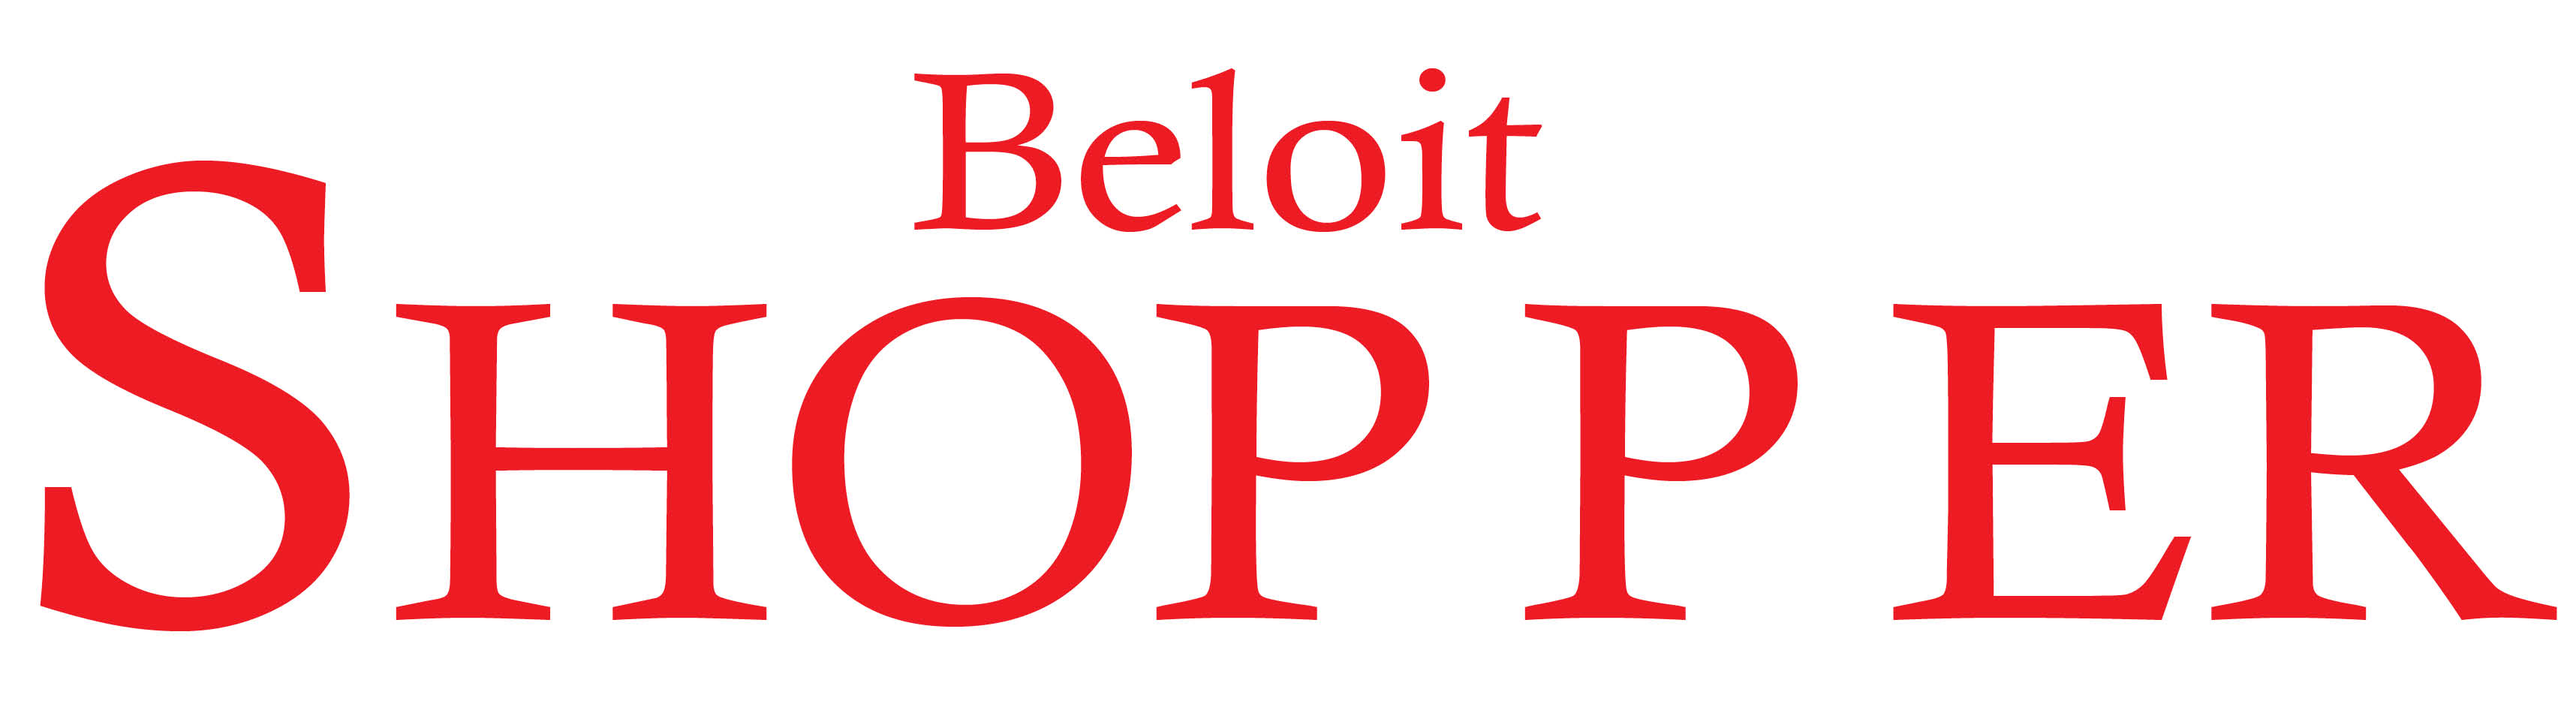 10/19/16 Beloit Shopper